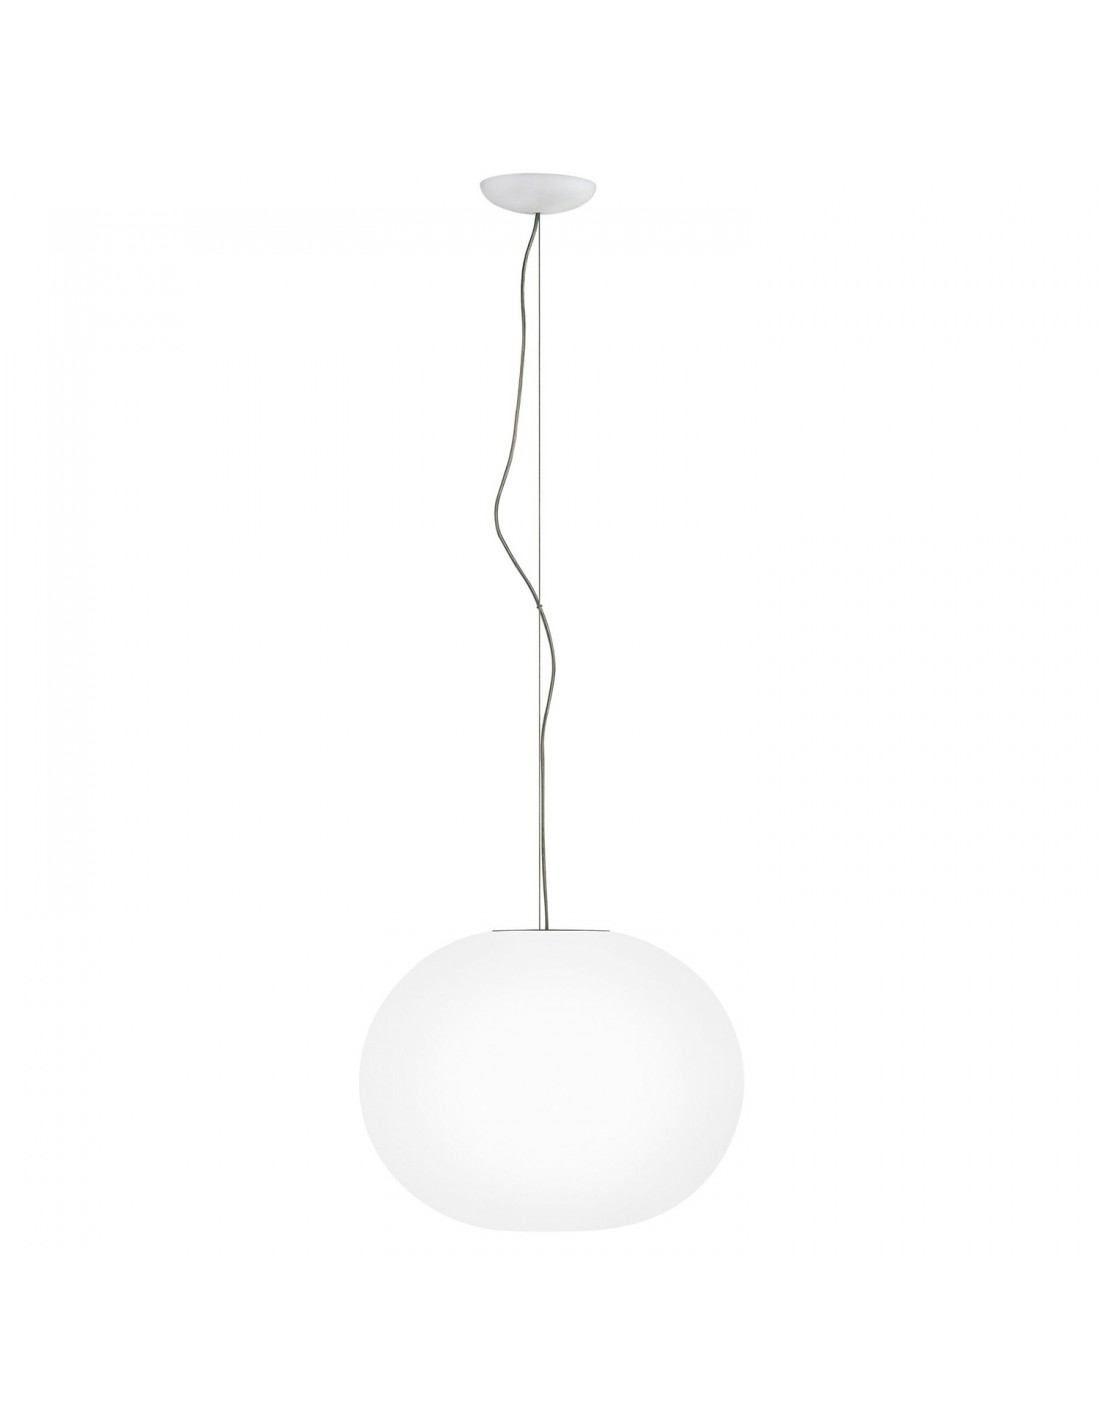 Suspension Glo-Ball S1 Flos